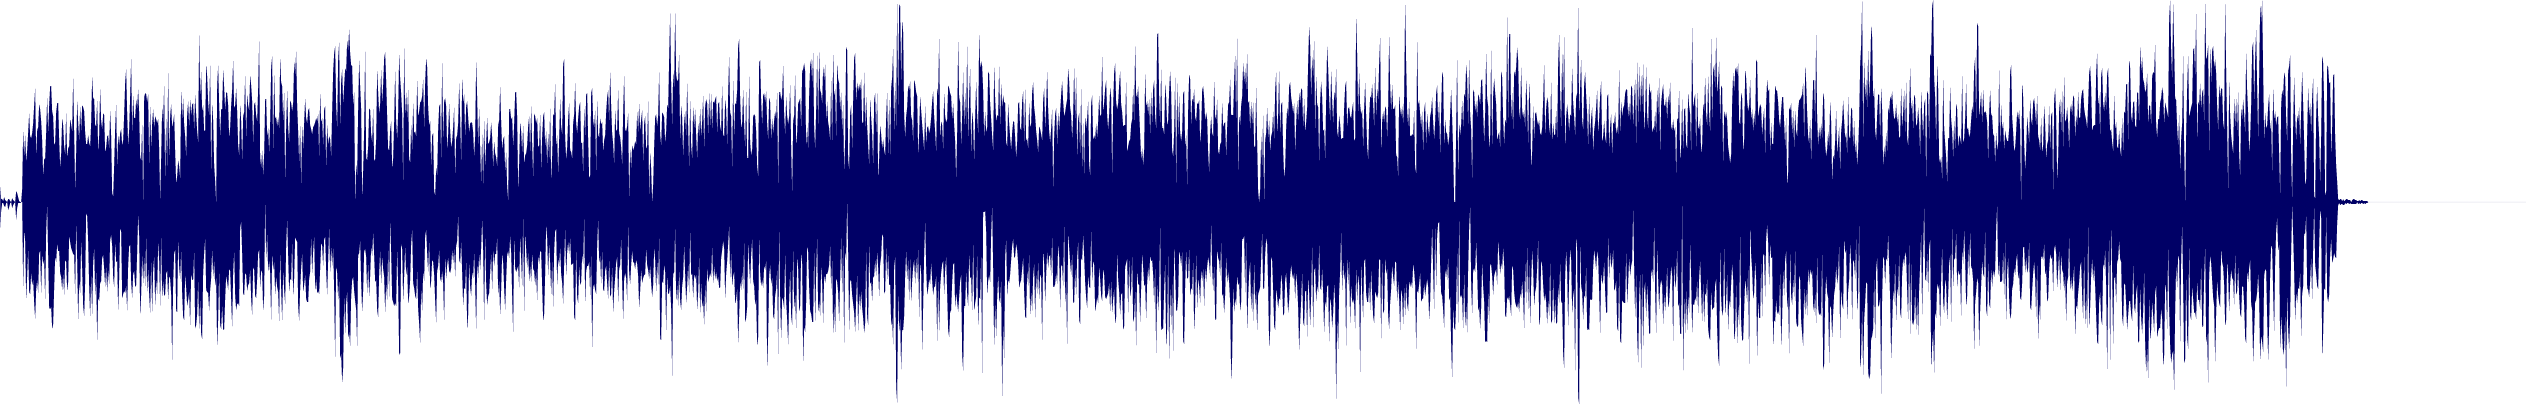 waveform of track #112988